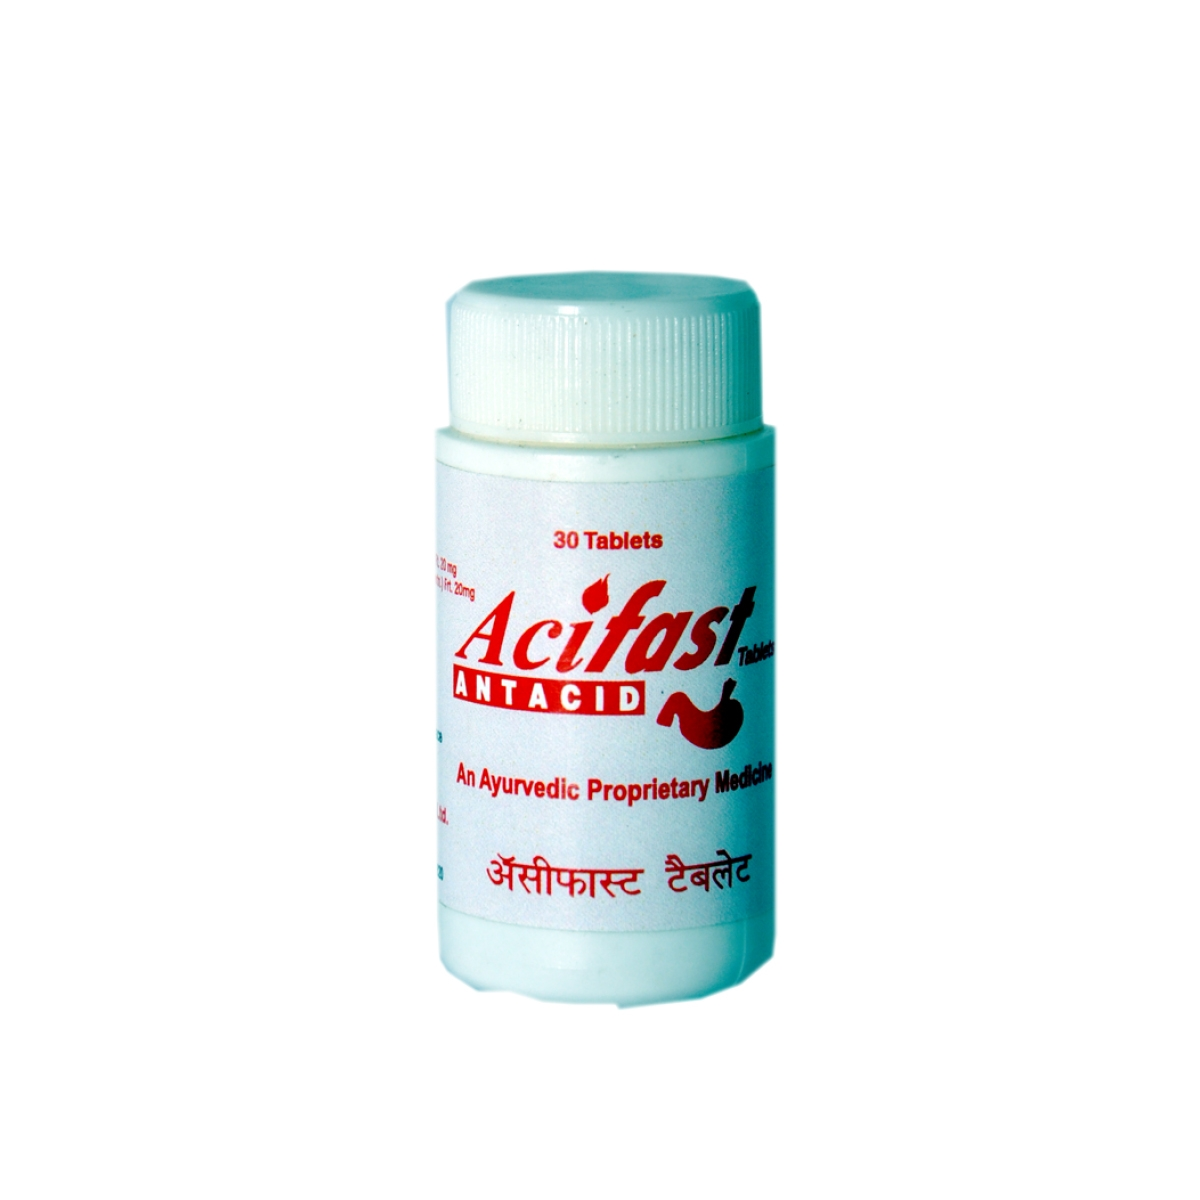 Acifast Tablet In Jalor